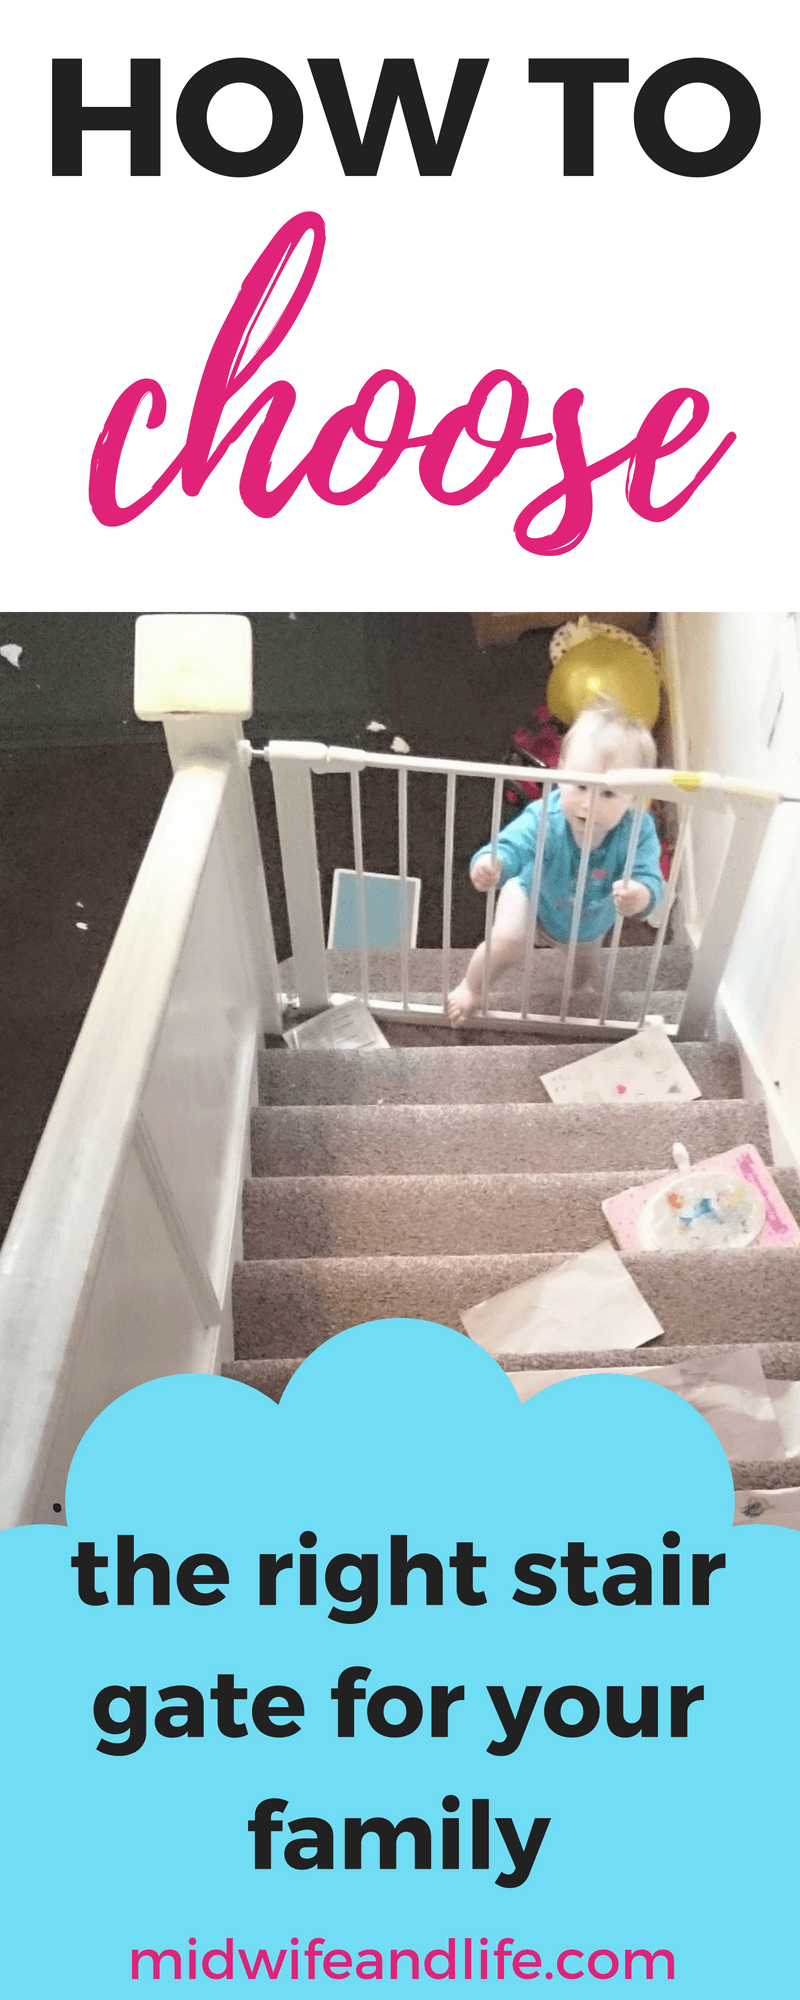 Are you at the baby gate stage? When baby starts moving they head straight for the stairs! This baby stair gate guide will help you find the best gate for your home and family. #babygate #stairgate #onthemove